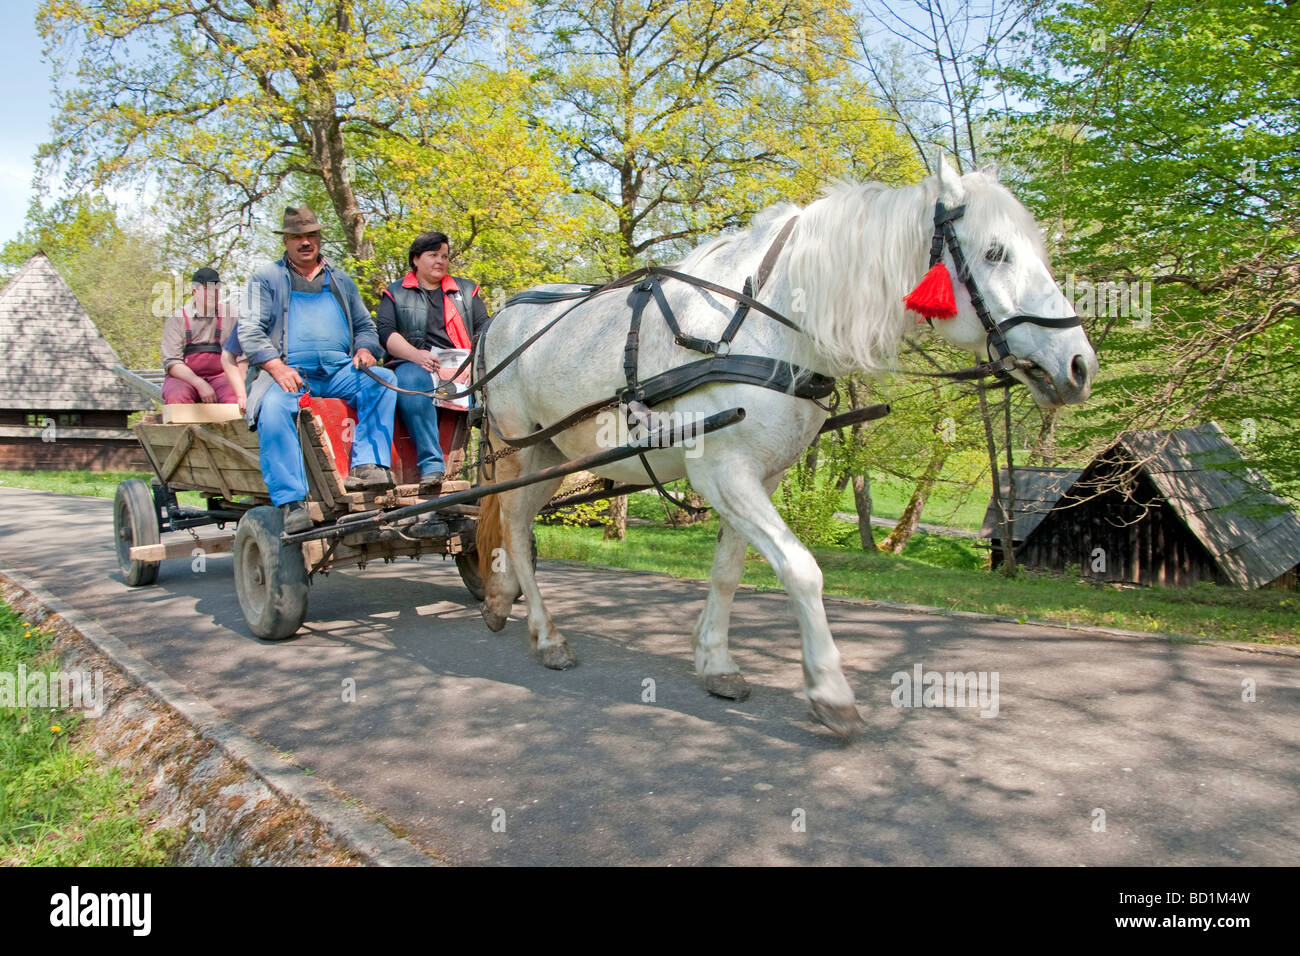 Romania's Museum of Traditional Folk Civilization, traditional transport, at Sibiu in Transylvania - Stock Image